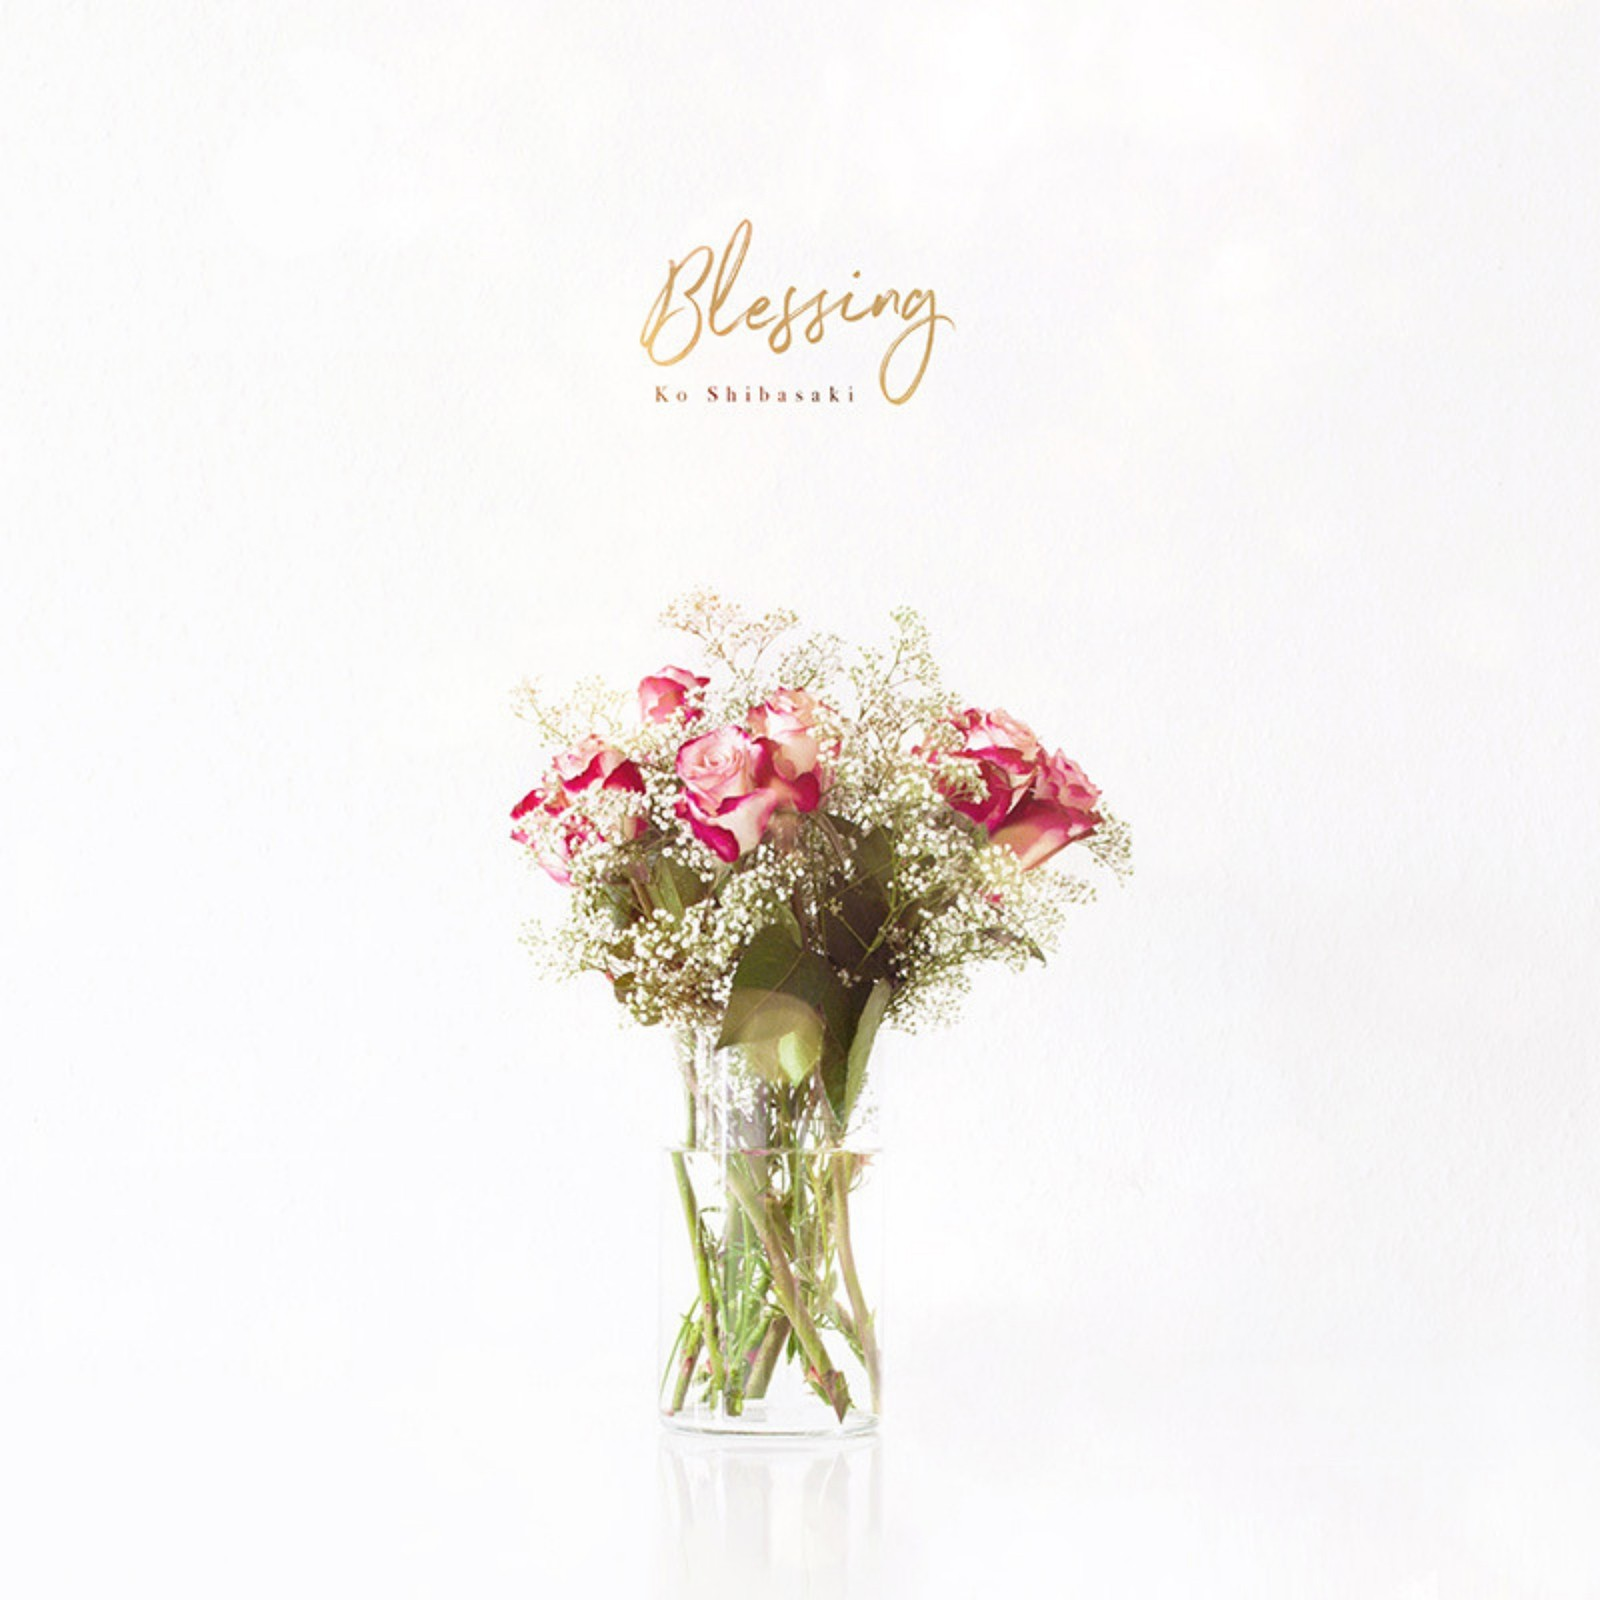 柴咲コウ (Kou Shibasaki) – Blessing [FLAC / 24bit Lossless / WEB] [2019.04.26]